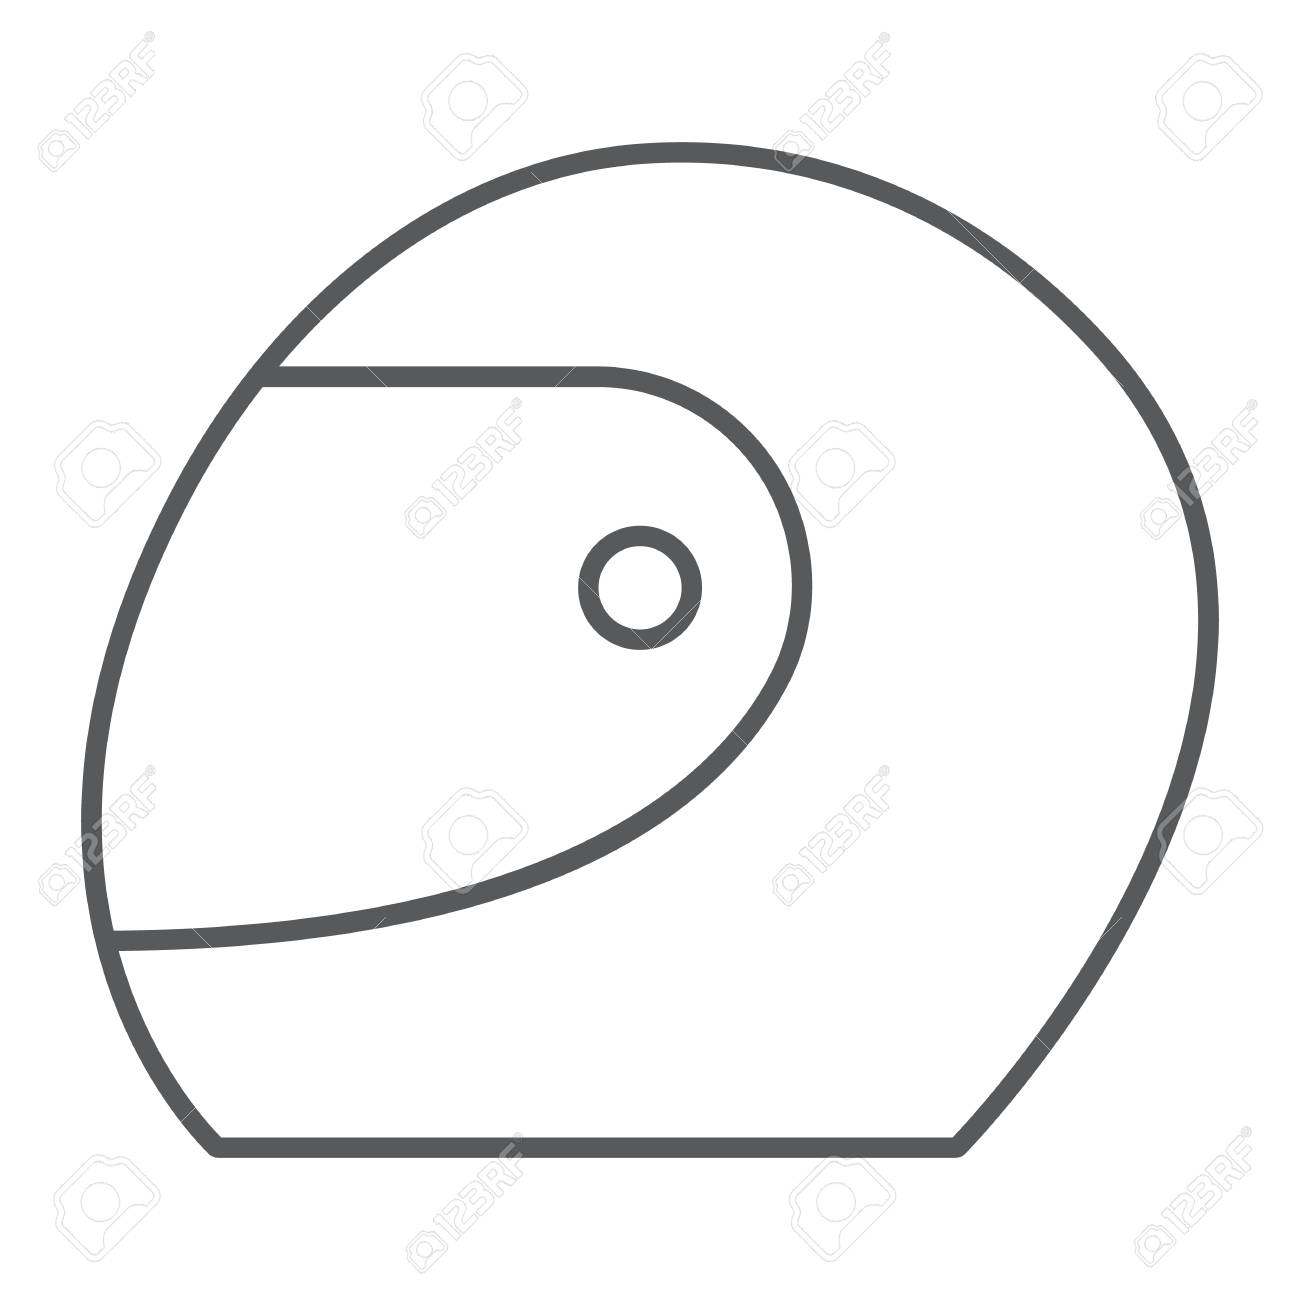 106950472 racing helmet thin line icon protection and motorsport motorcycle helmet sign vector graphics a line racing helmet thin line icon, protection and motorsport, motorcycle